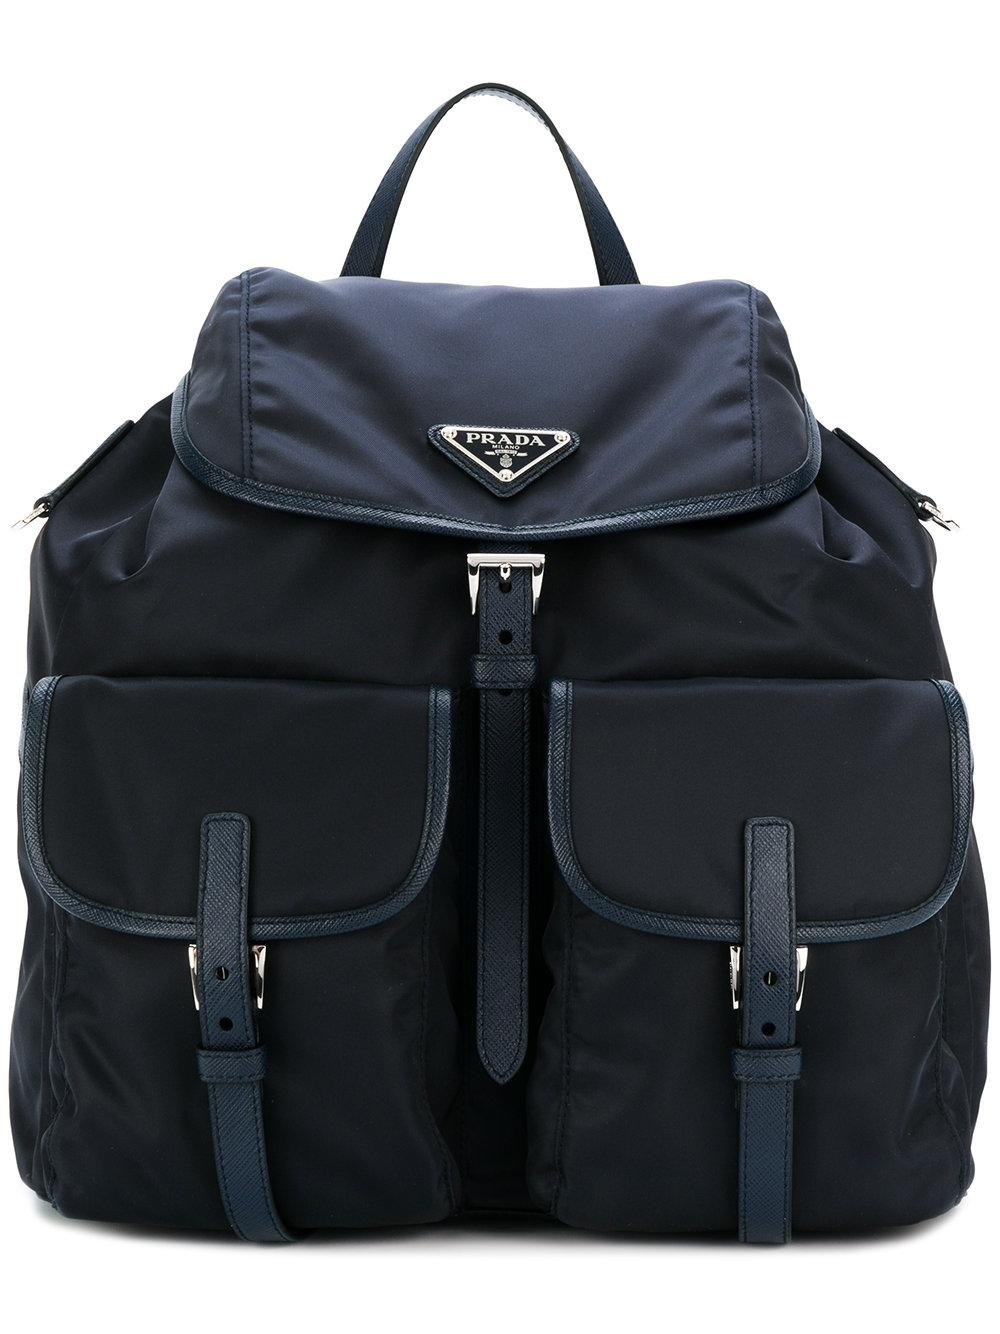 e732d584d0 Prada Leather-Trimmed Backpack